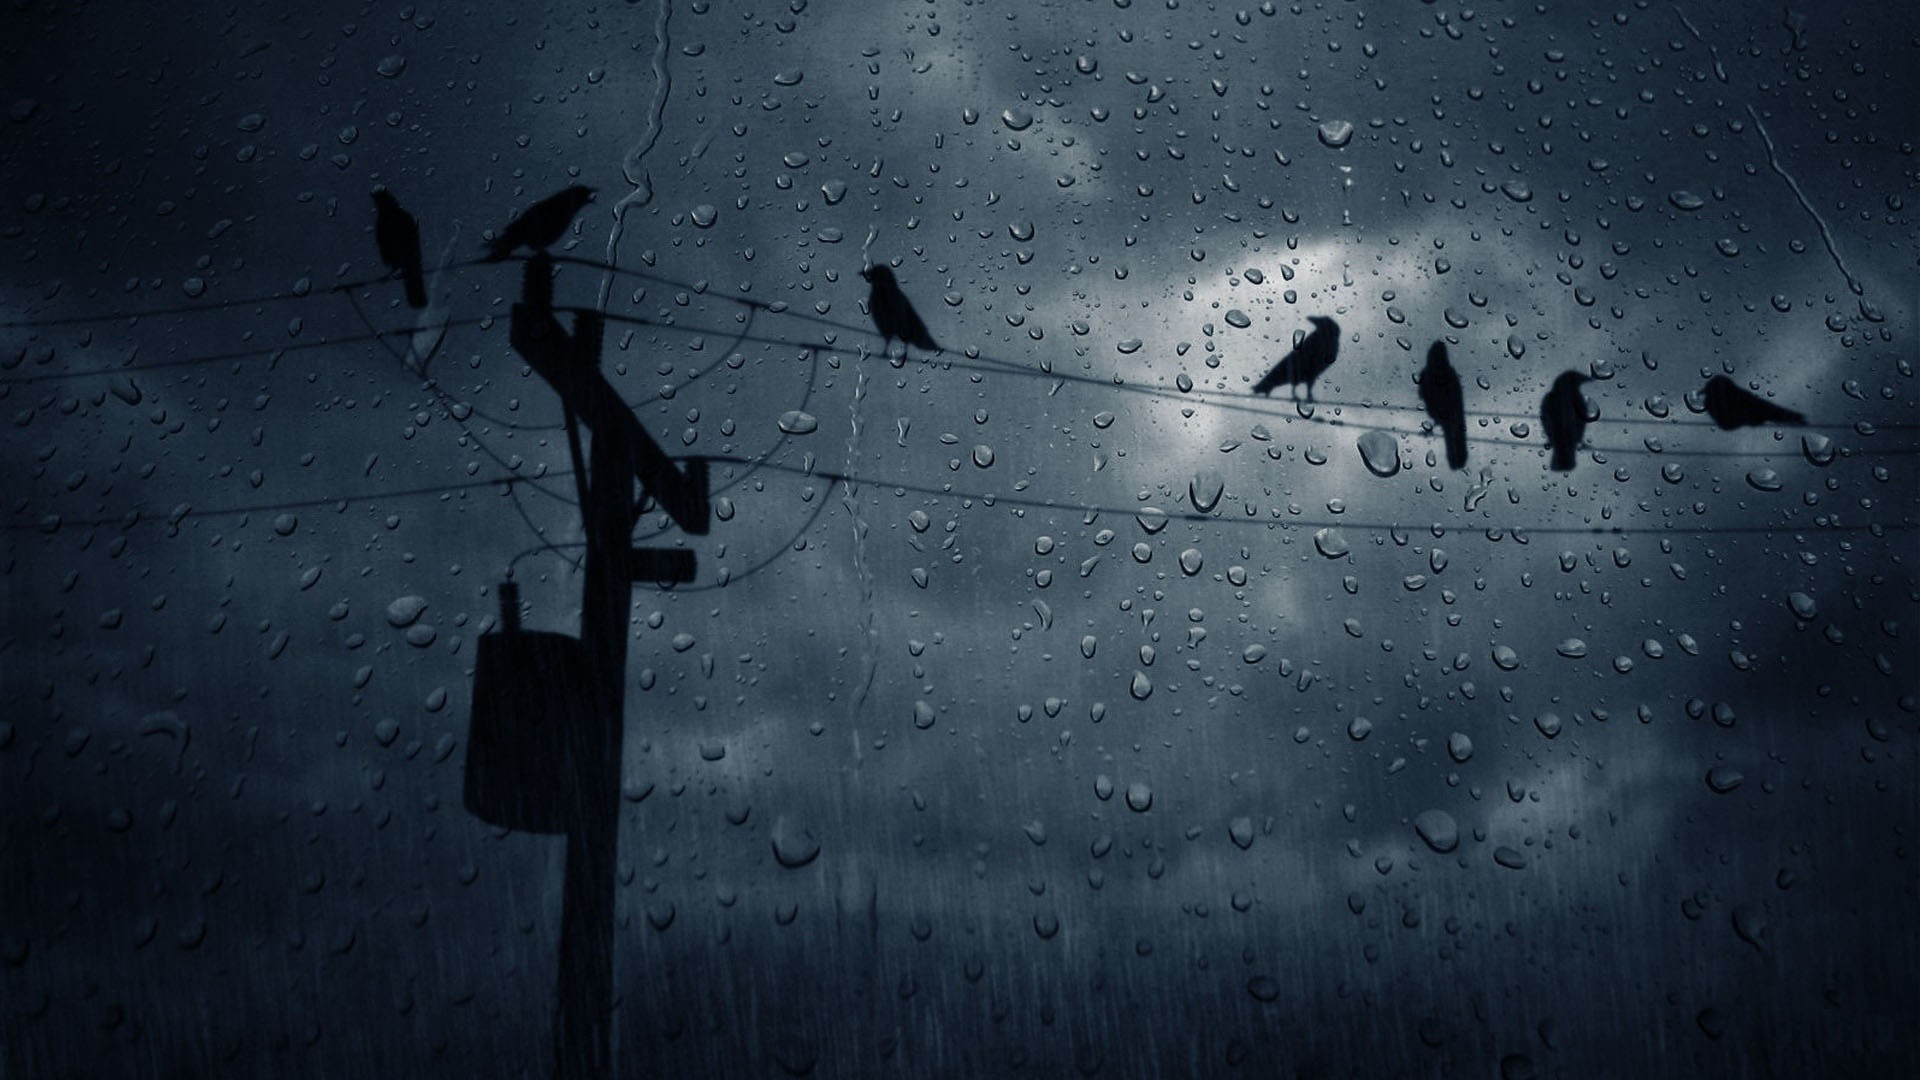 Hd wallpaper rain - Available In 1920 1080